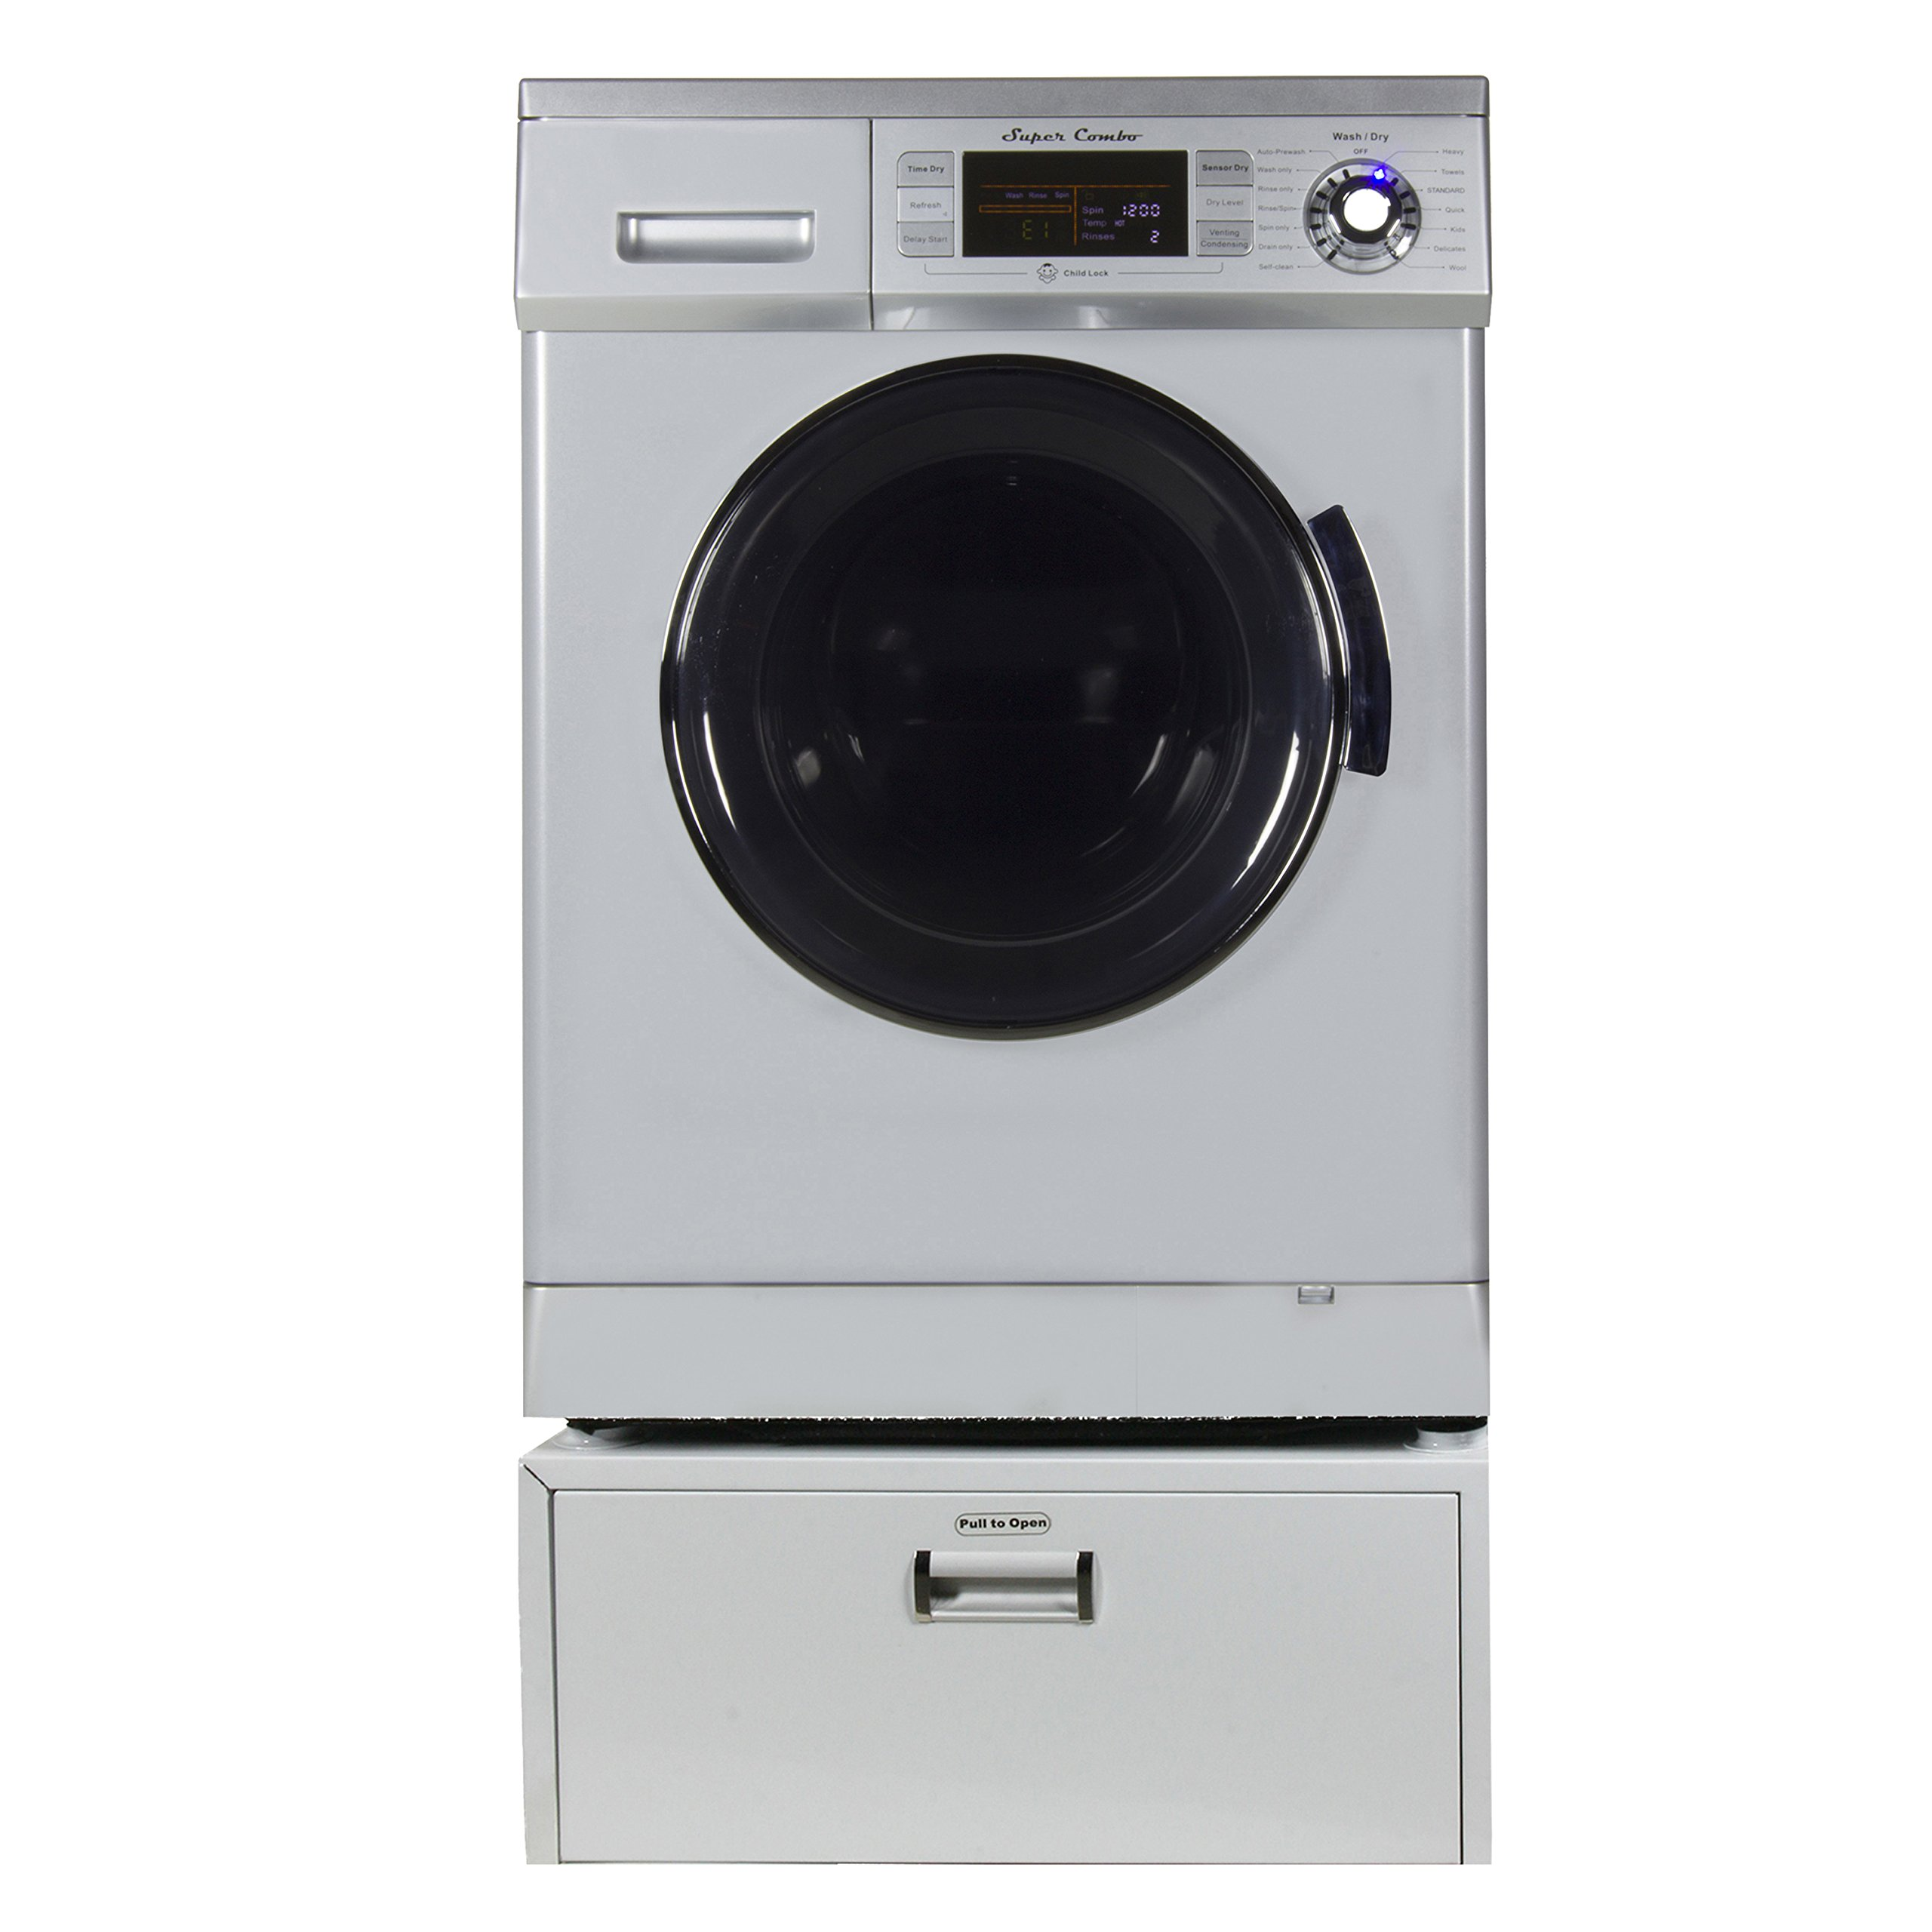 Equator Super Combo Washer-Dryer EZ 4400 11 '' High Pedestal with Storage drawer, in Silver